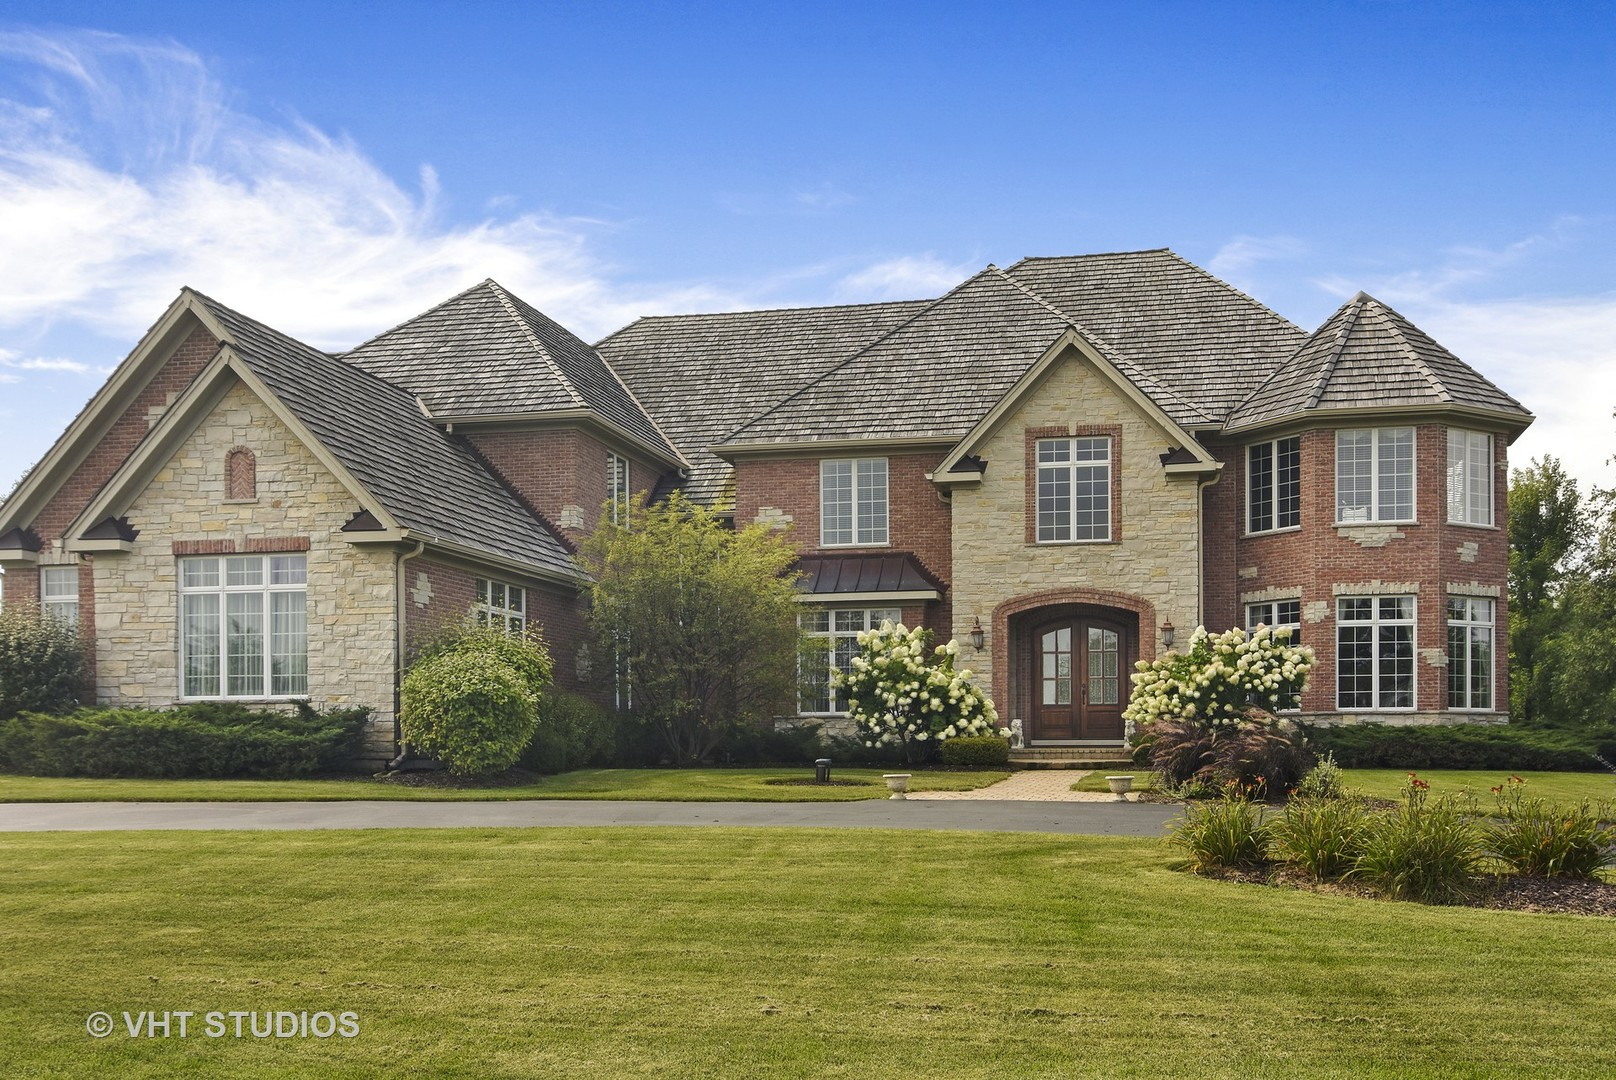 20005 Old Meadow Trail, Long Grove, Illinois 60047